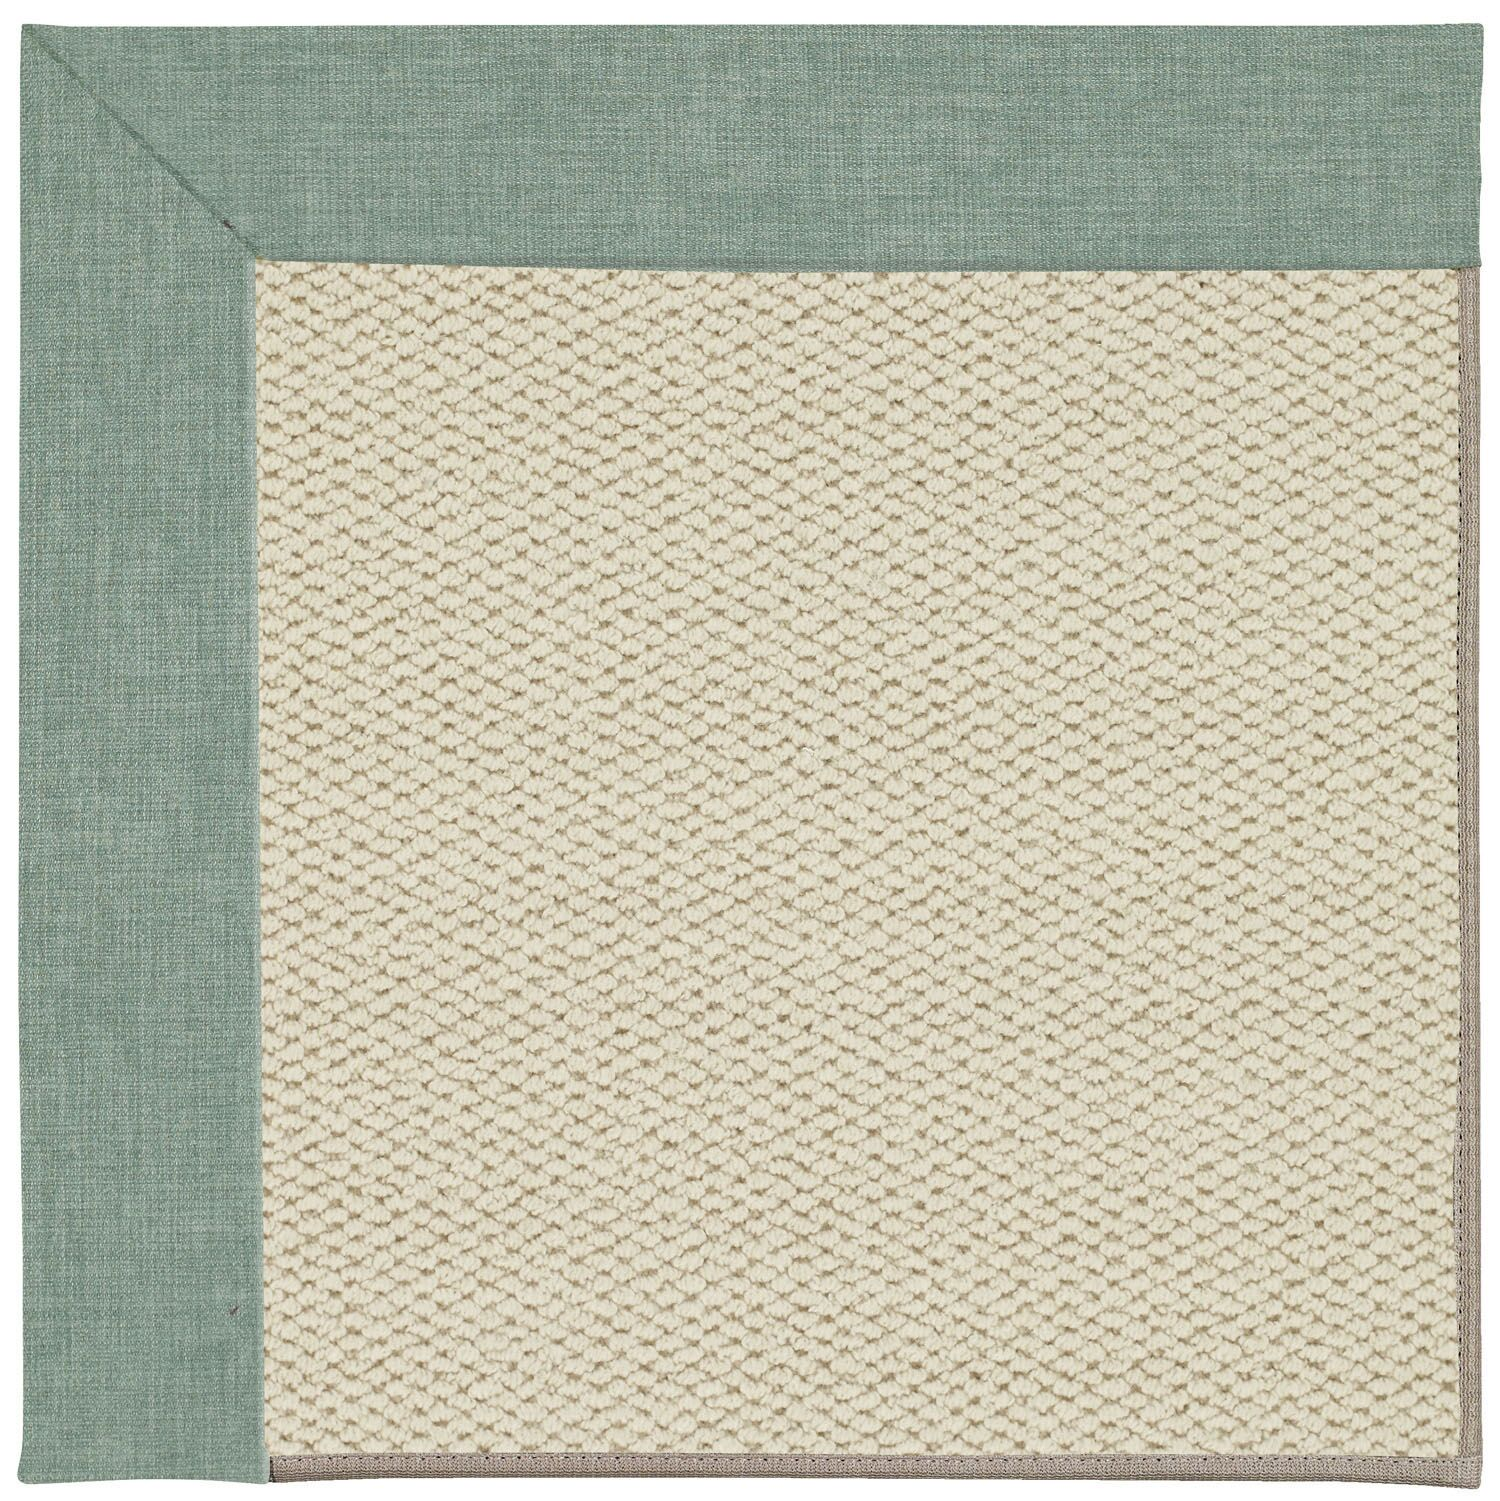 Barrett Linen Machine Tufted Reef/Beige Area Rug Rug Size: Rectangle 12' x 15'